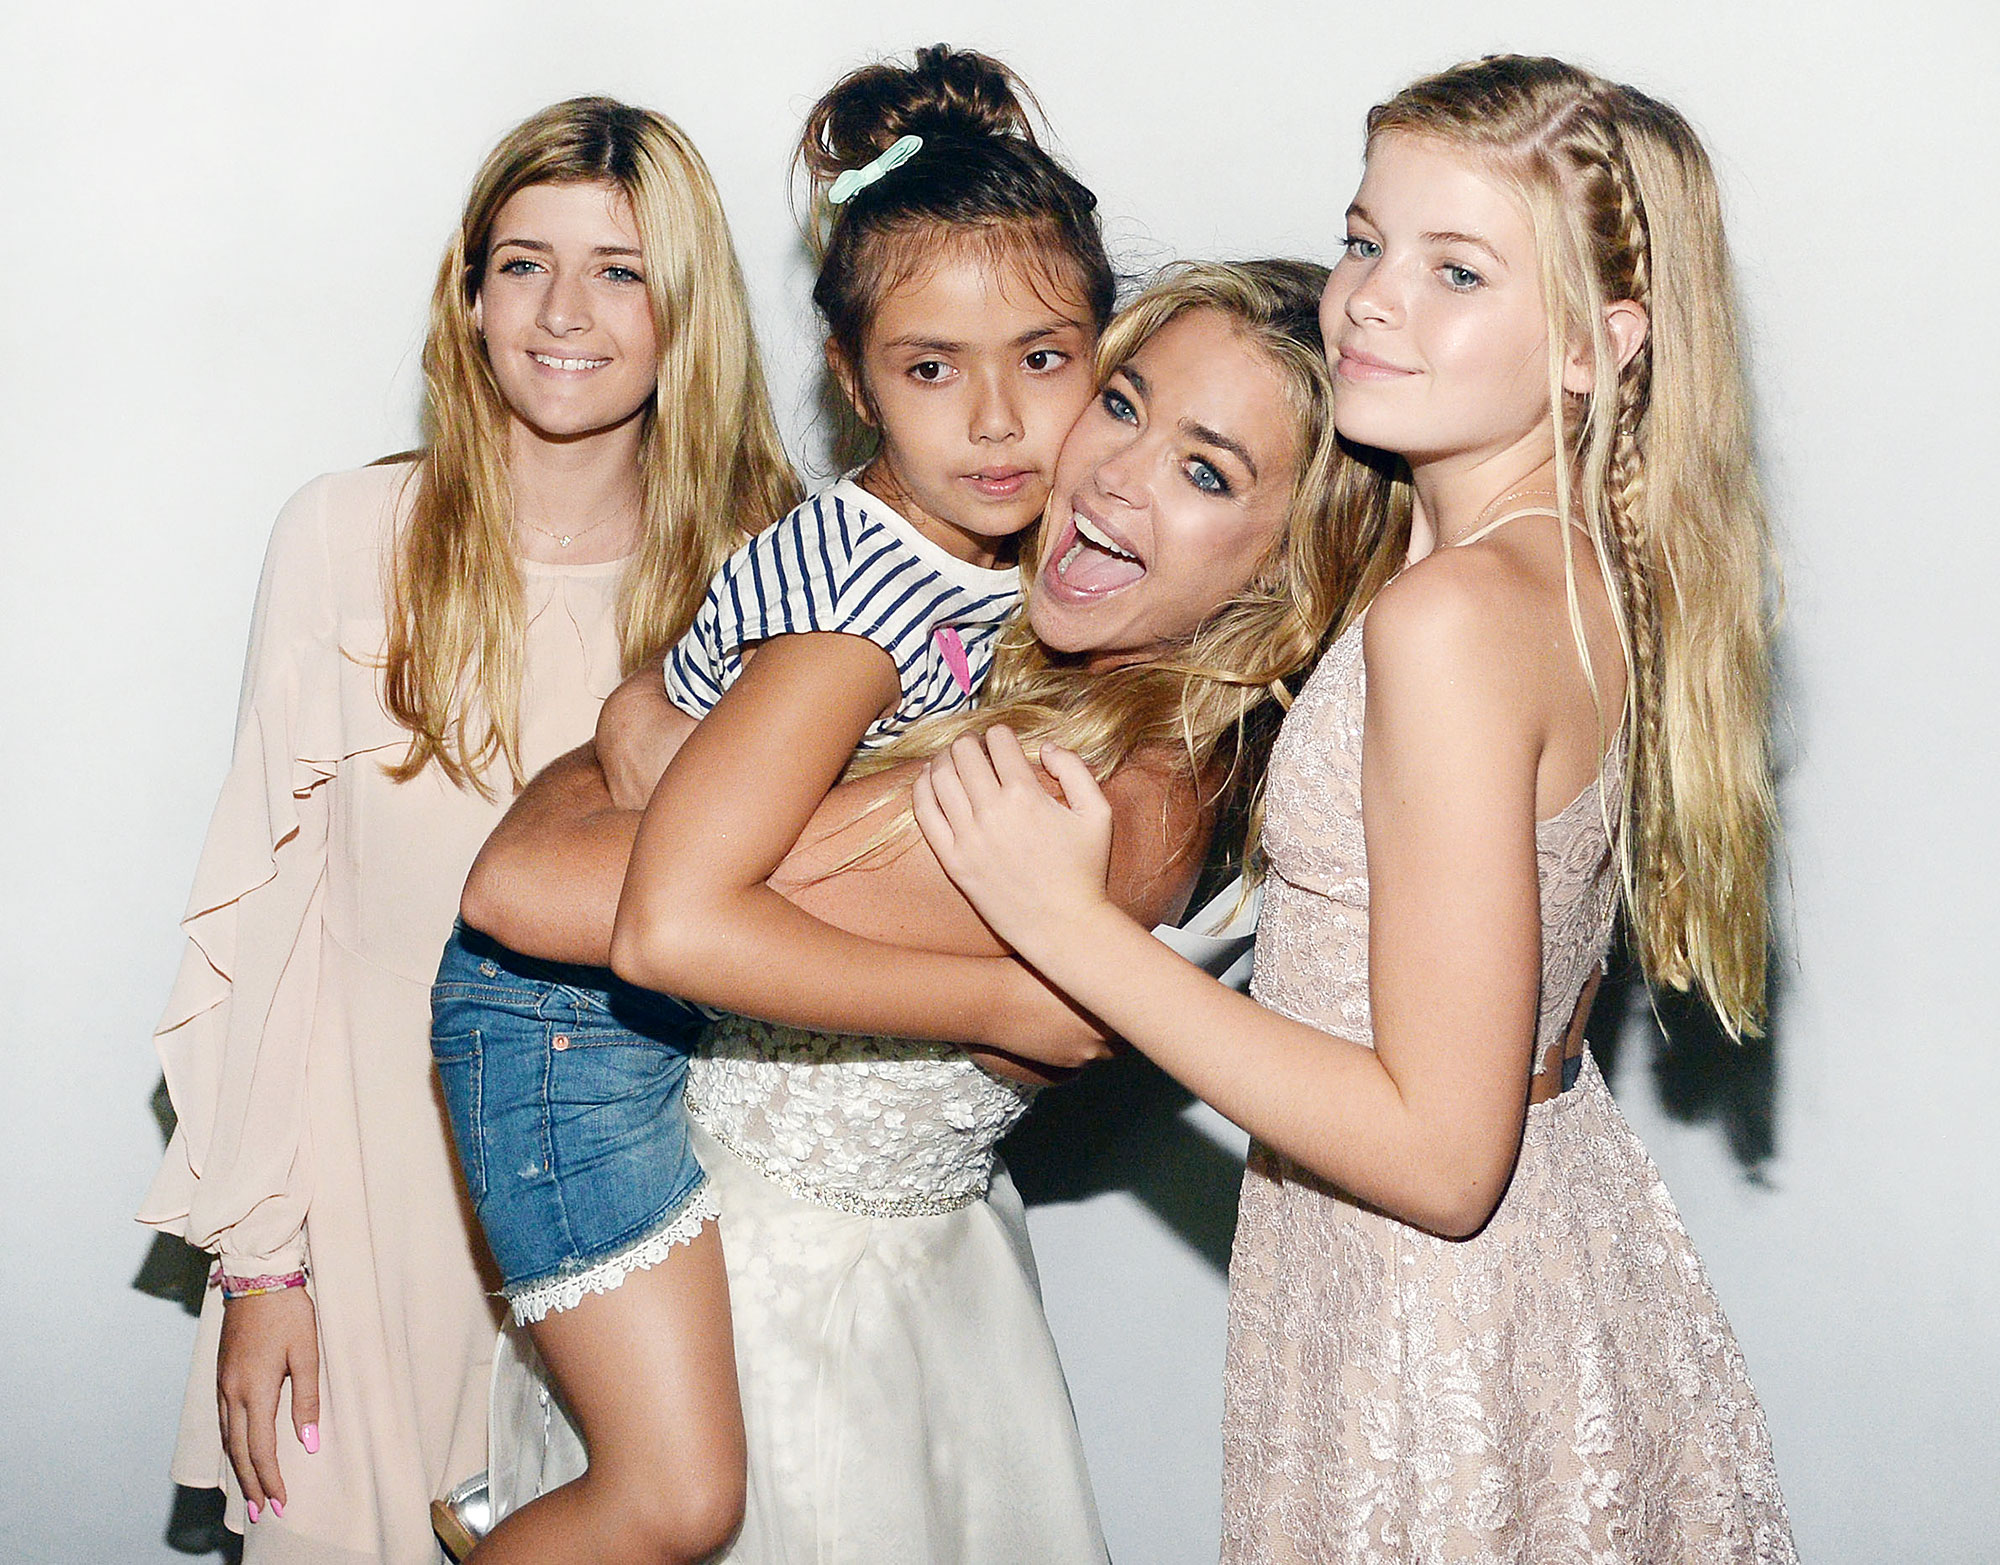 Denise Richards Honest With Daughters Told Them About Playboy Spread